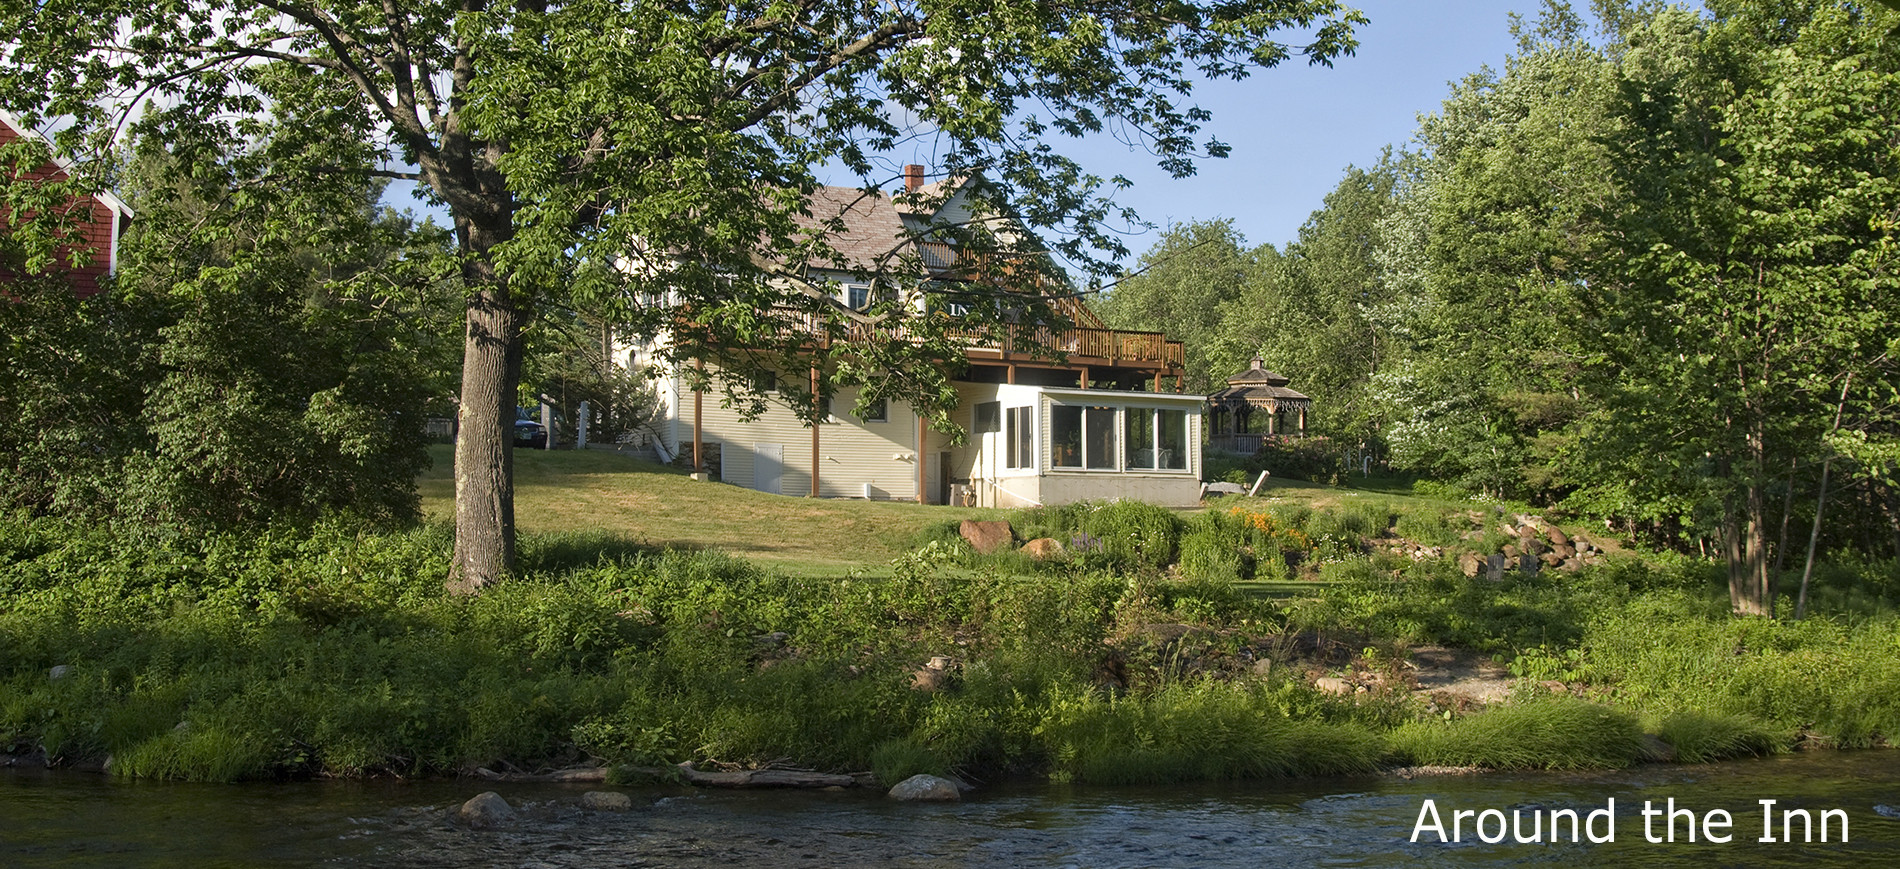 View of Inn at Ellis River across the river